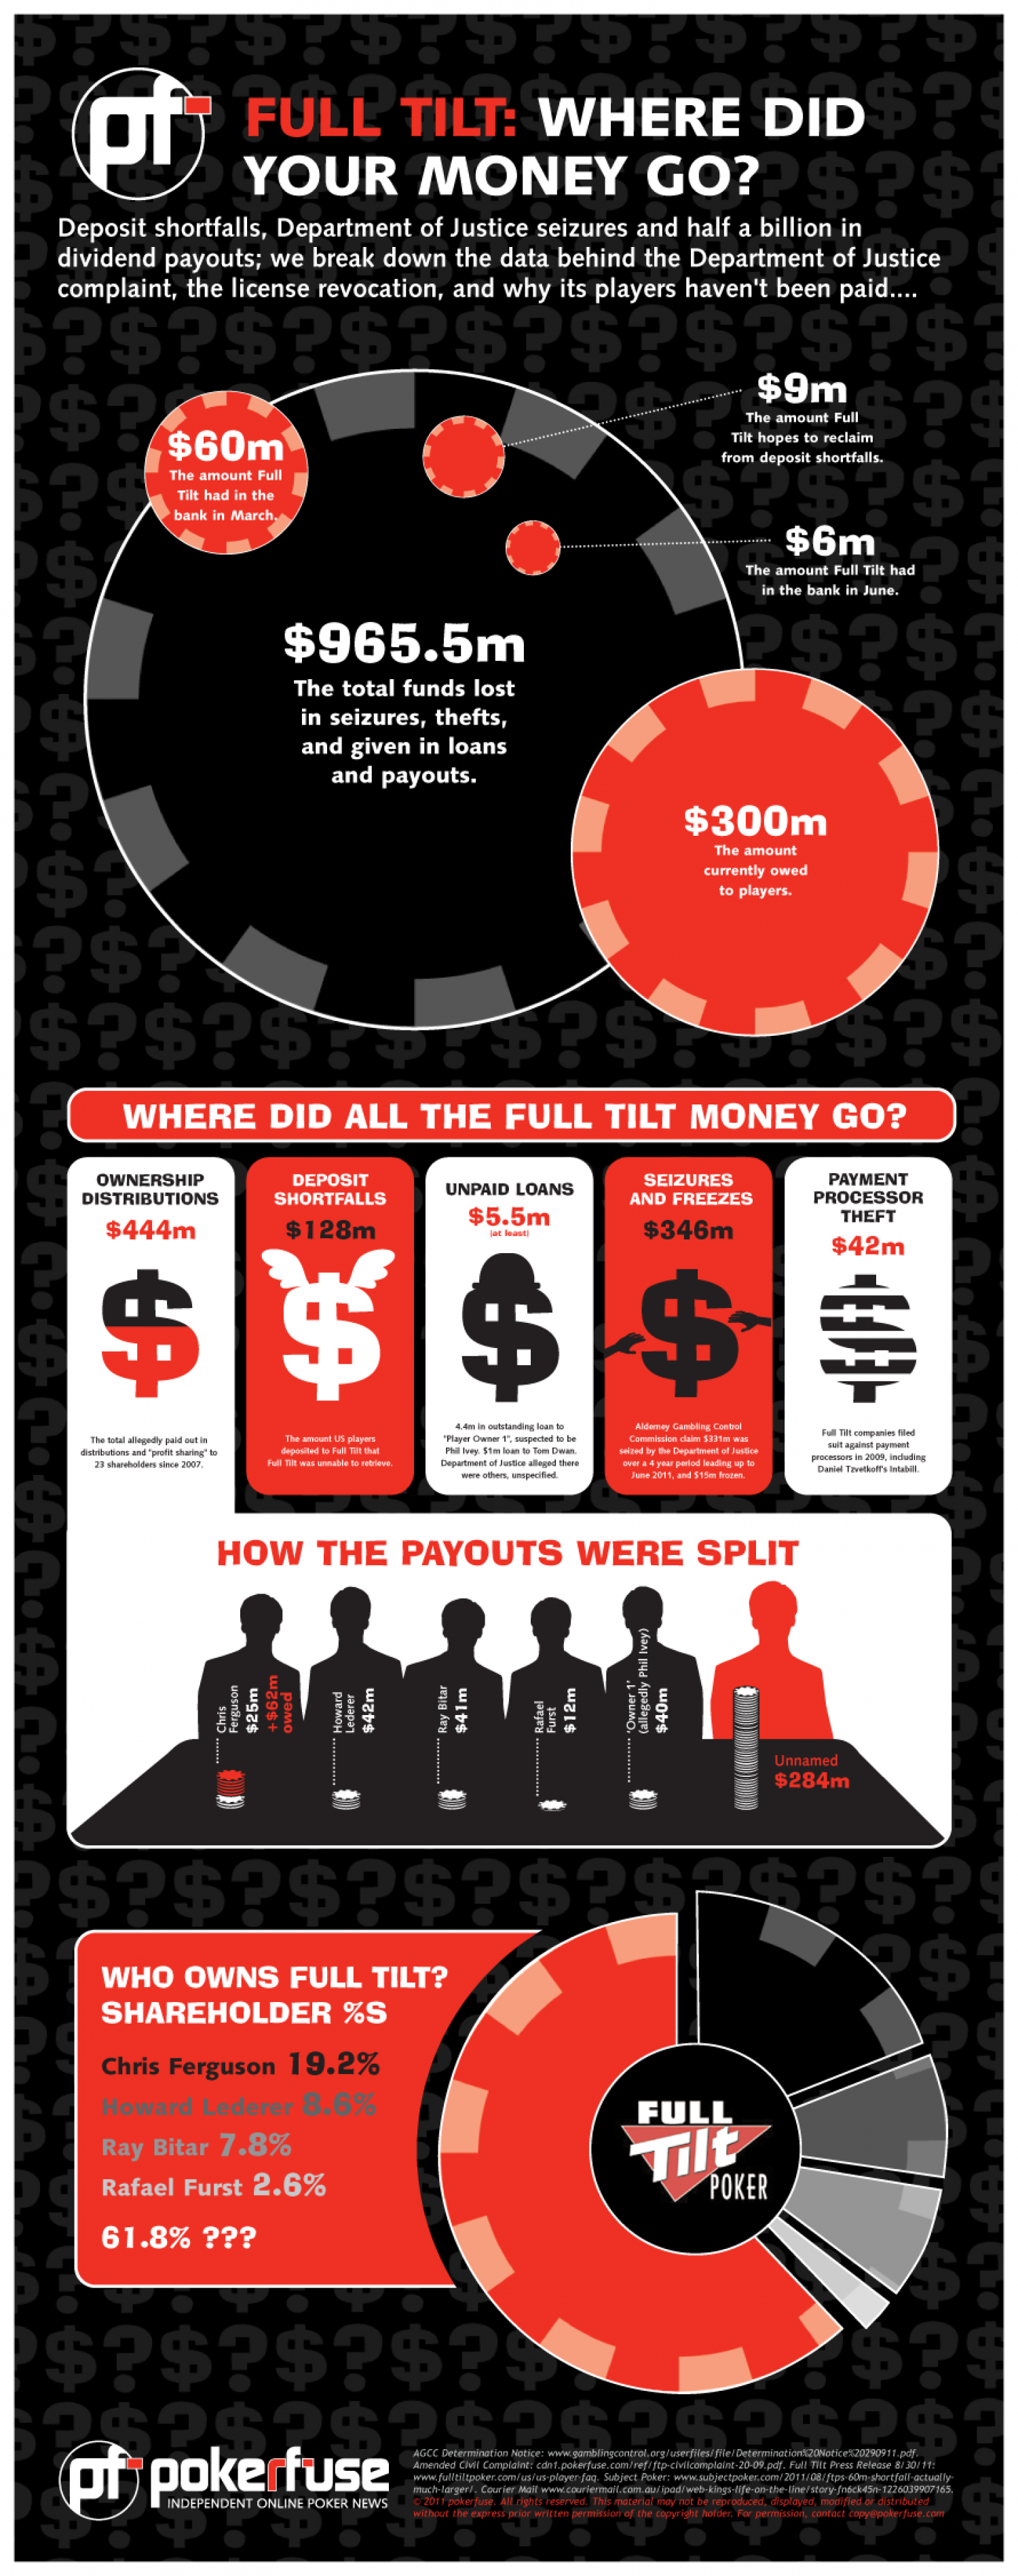 Full Tilt Poker: Where Did Your Money Go? Infographic